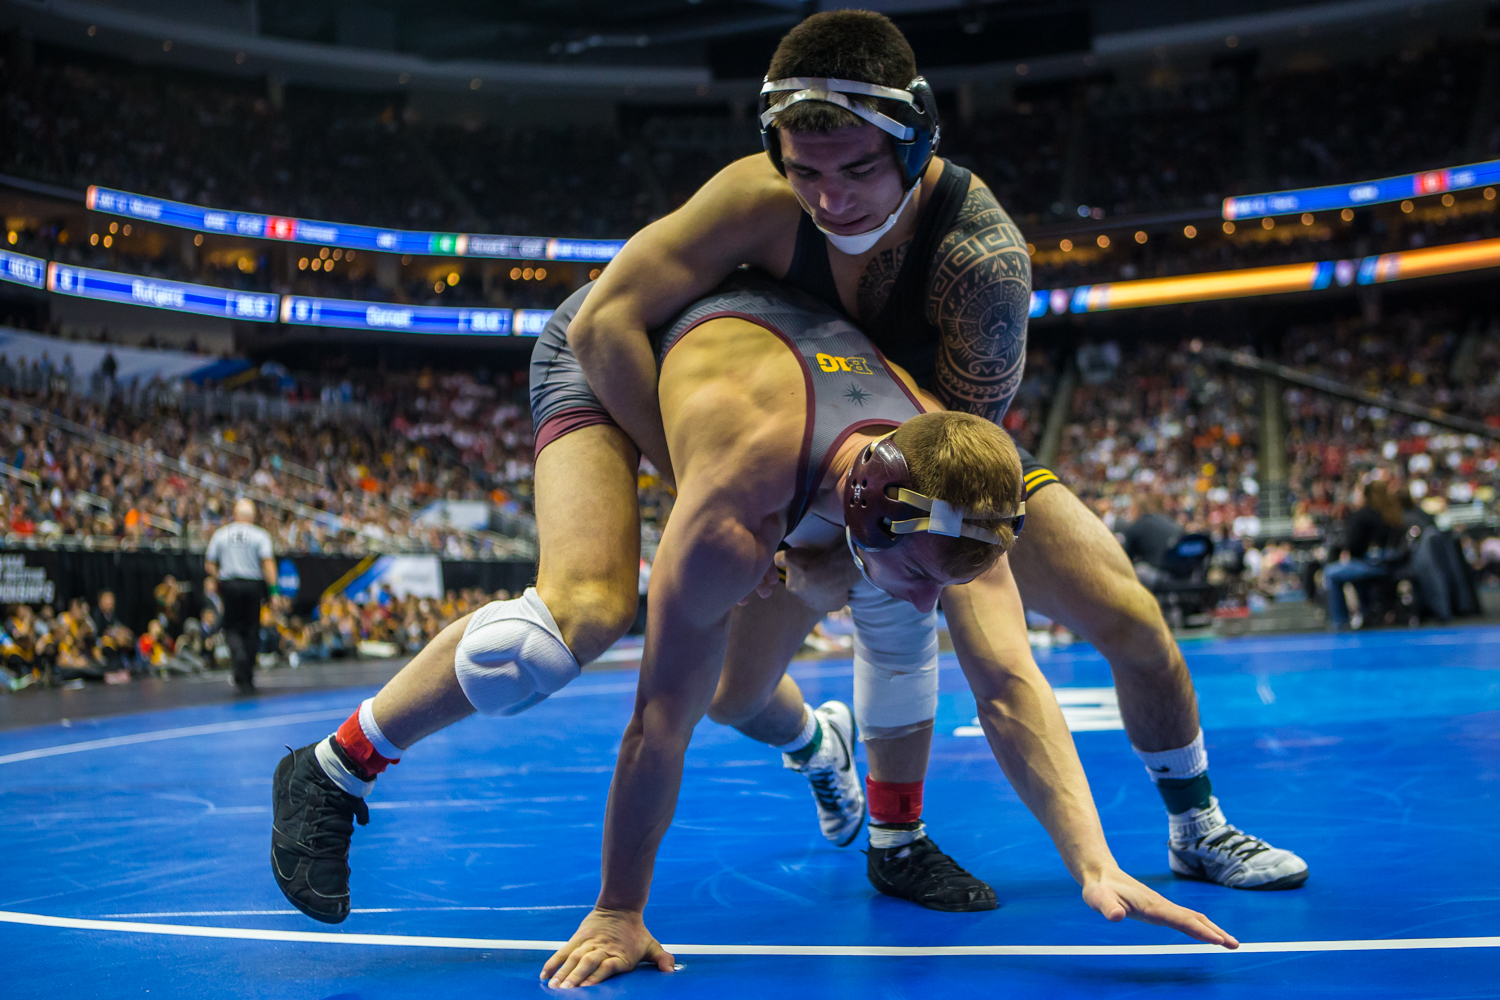 Iowa%E2%80%99s+149-pound+Pat+Lugo+wrestles+Minnesota%E2%80%99s+Thomas+Thorn+during+the+fourth+session+of+the+2019+NCAA+D1+Wrestling+Championships+at+PPG+Paints+Arena+in+Pittsburgh%2C+PA+on+Friday%2C+March+22%2C+2019.+Lugo+won+by+decision%2C+4-0.